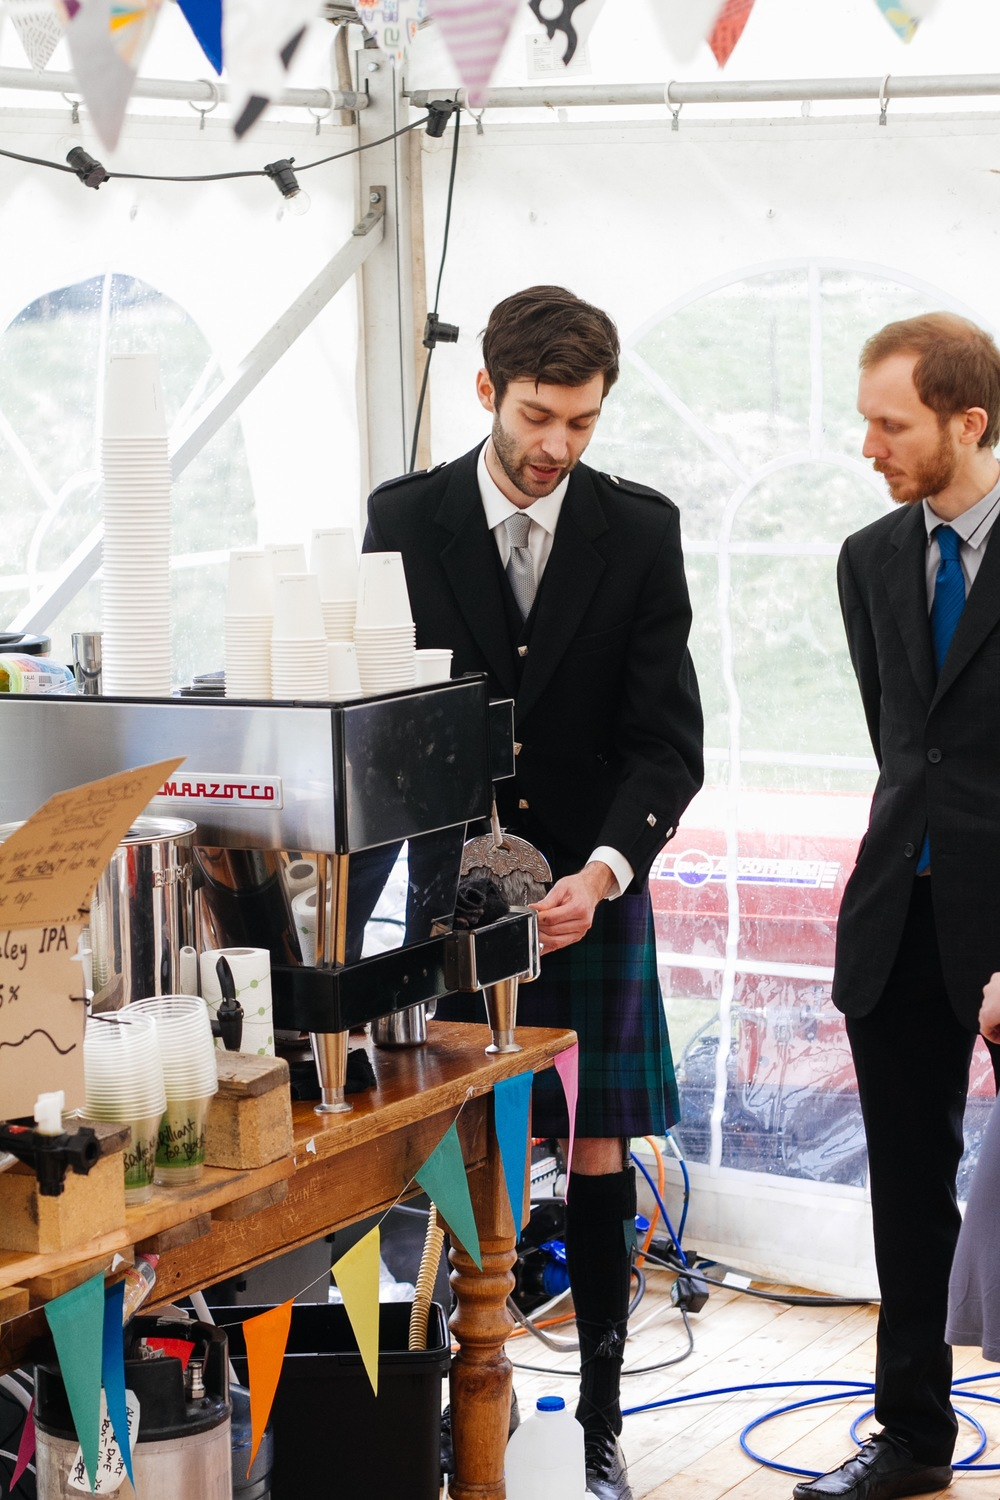 Coffee for weddings   Professional baristas and personalised coffee for your big day.   Find out more